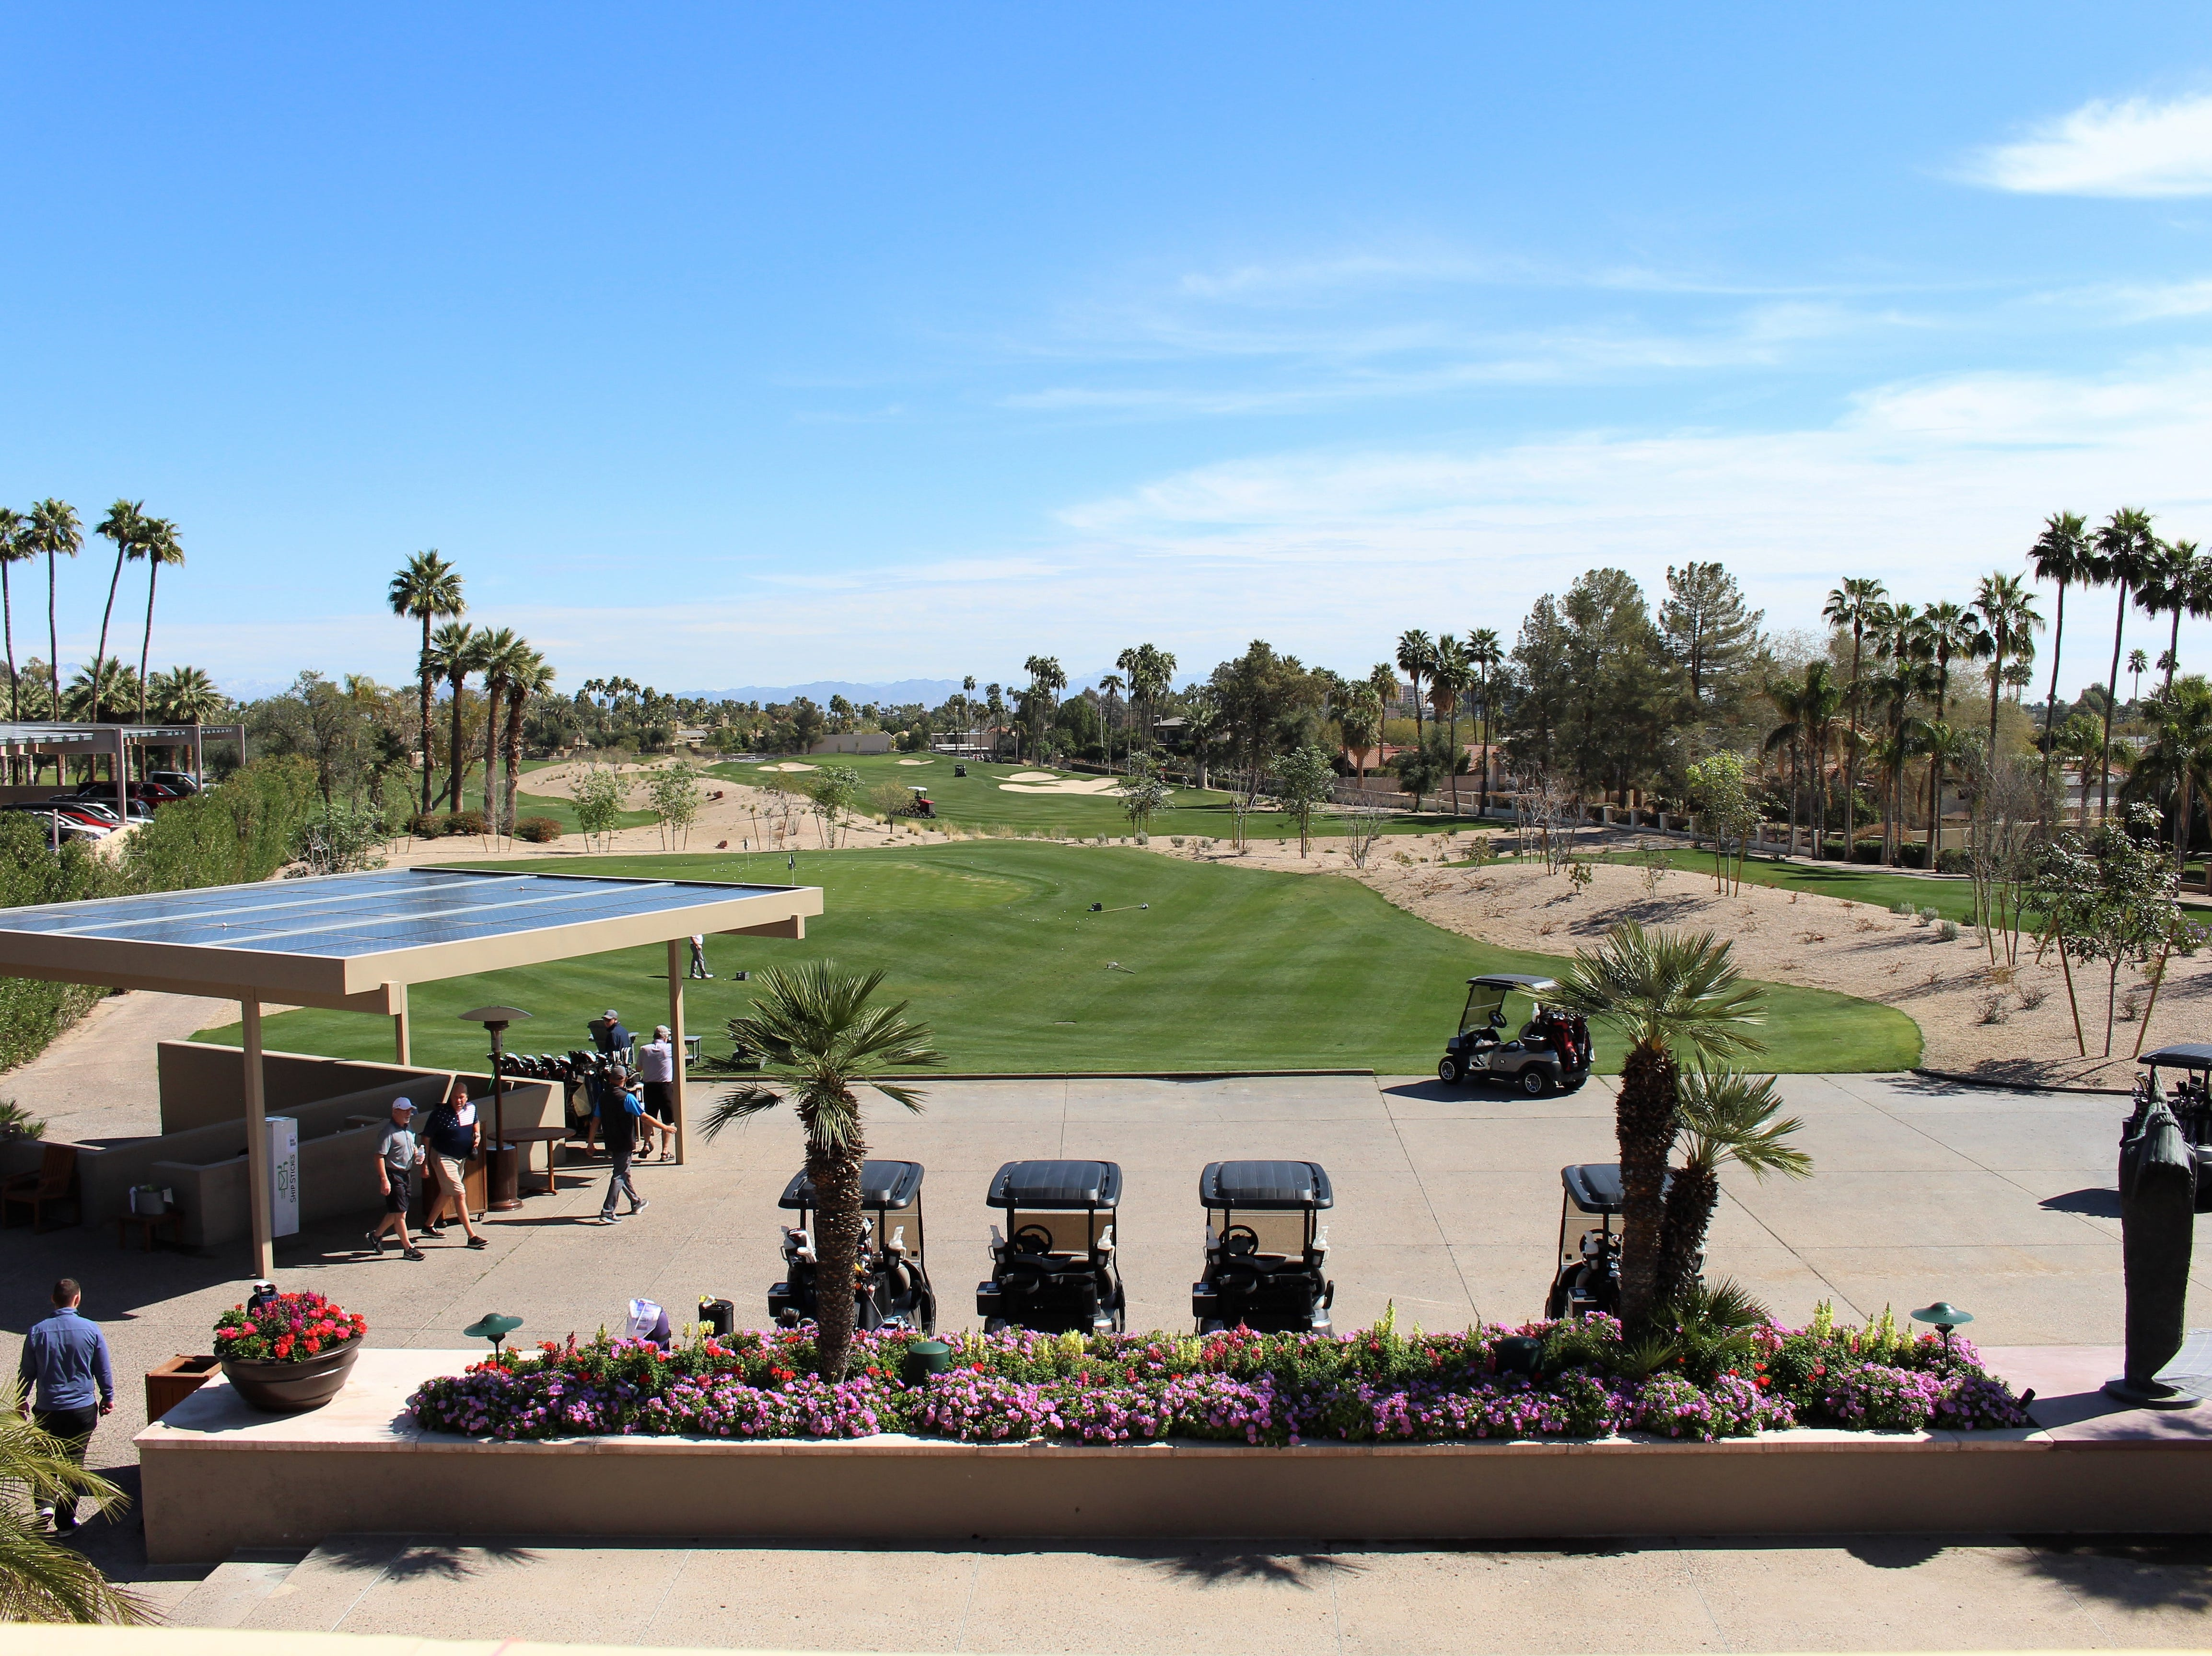 View of the newly renovated golf course from The Phoenician Tavern.